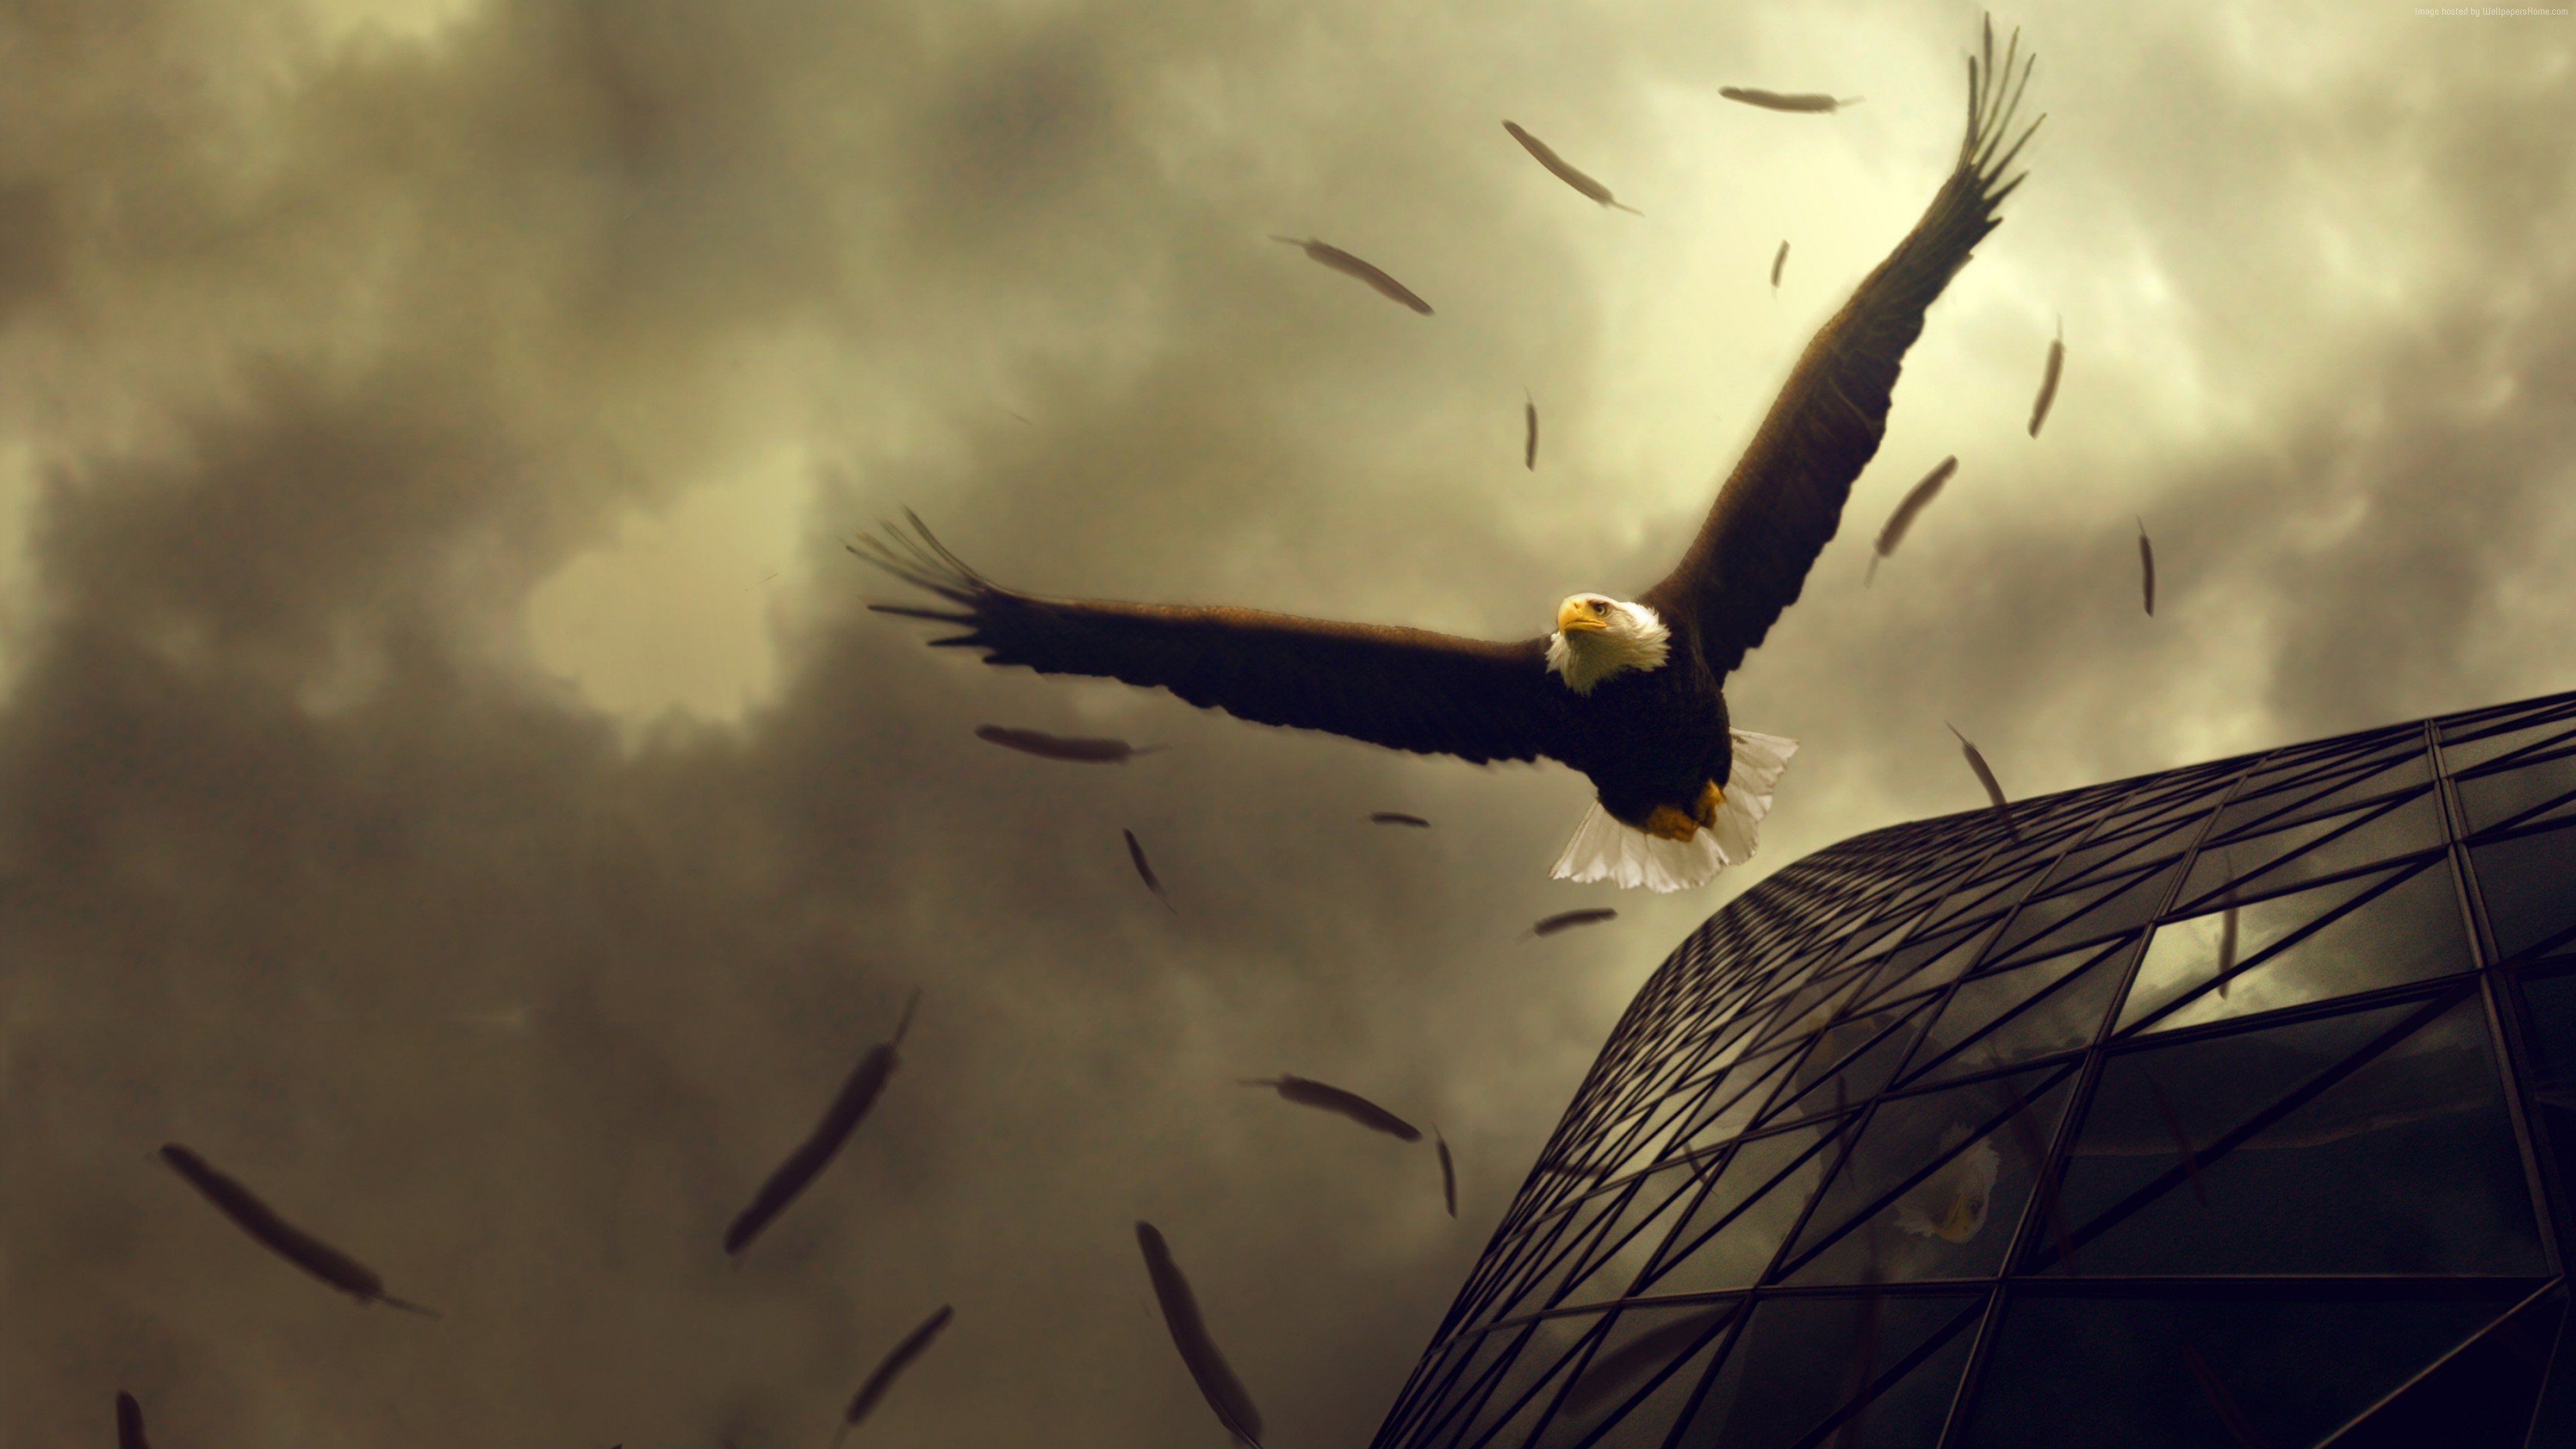 Wallpaper Eagle 4k Hd Wallpaper Sky Clouds Building Fly Wings Plumage Art Animals Wallpaper Download High Resolution 4k Wallpaper